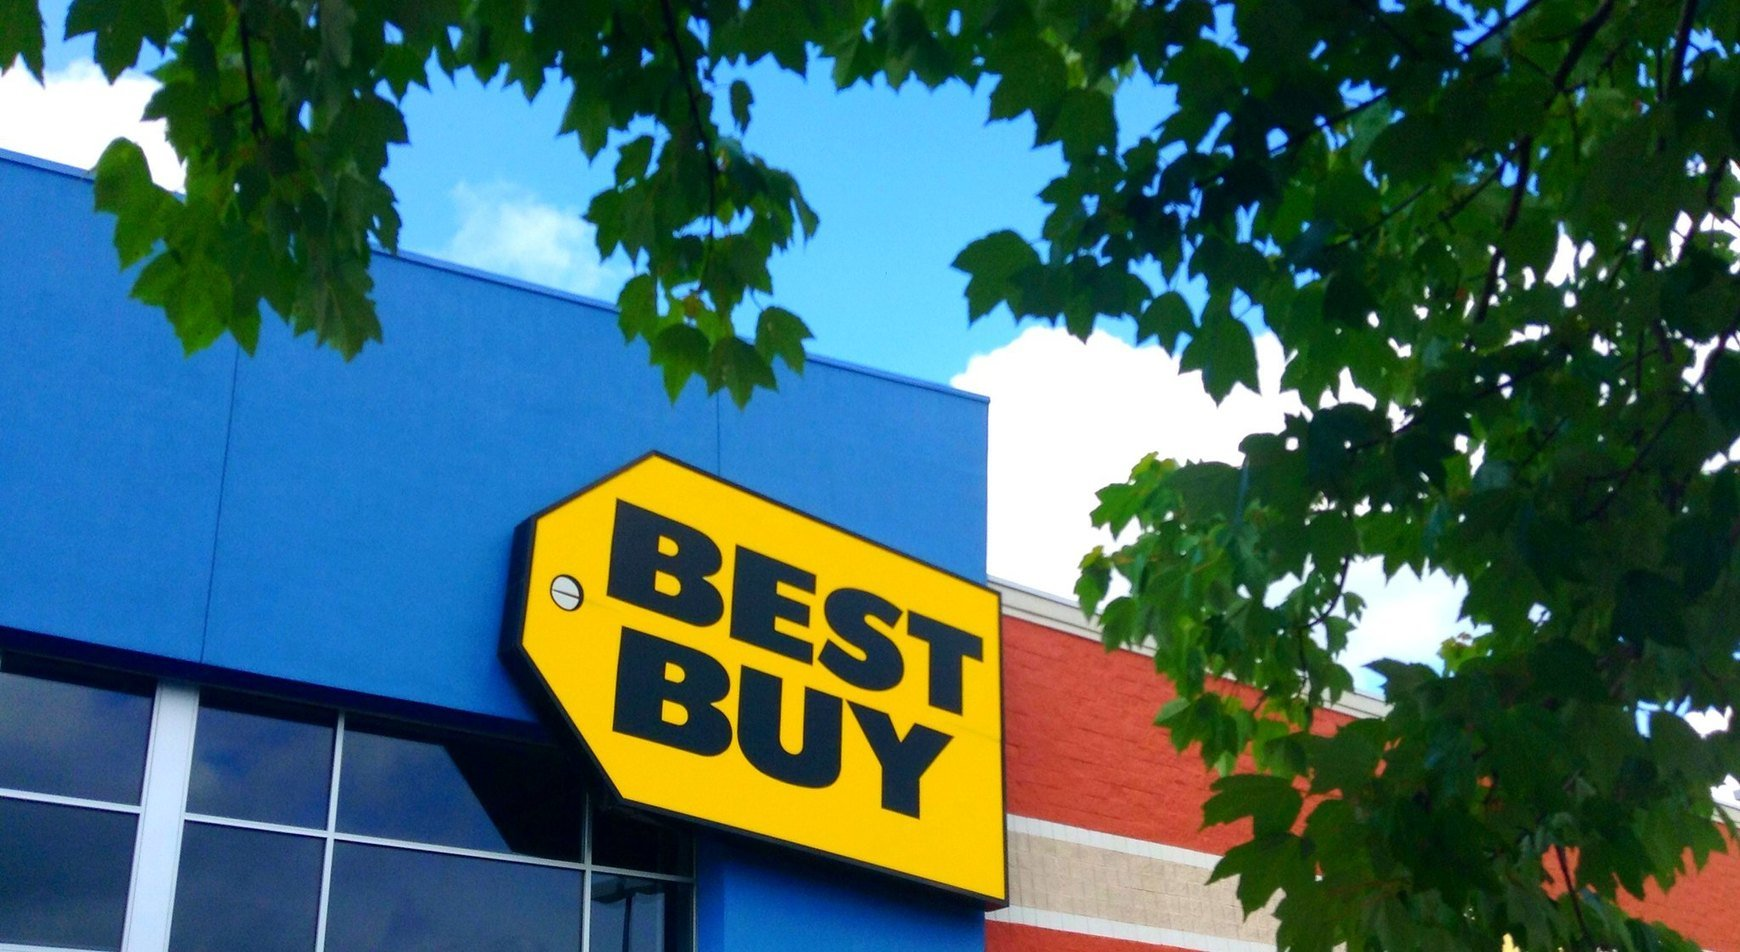 , Best Buy Recycles 2 Billion Pounds of E-Waste and Appliances, The Circular Economy